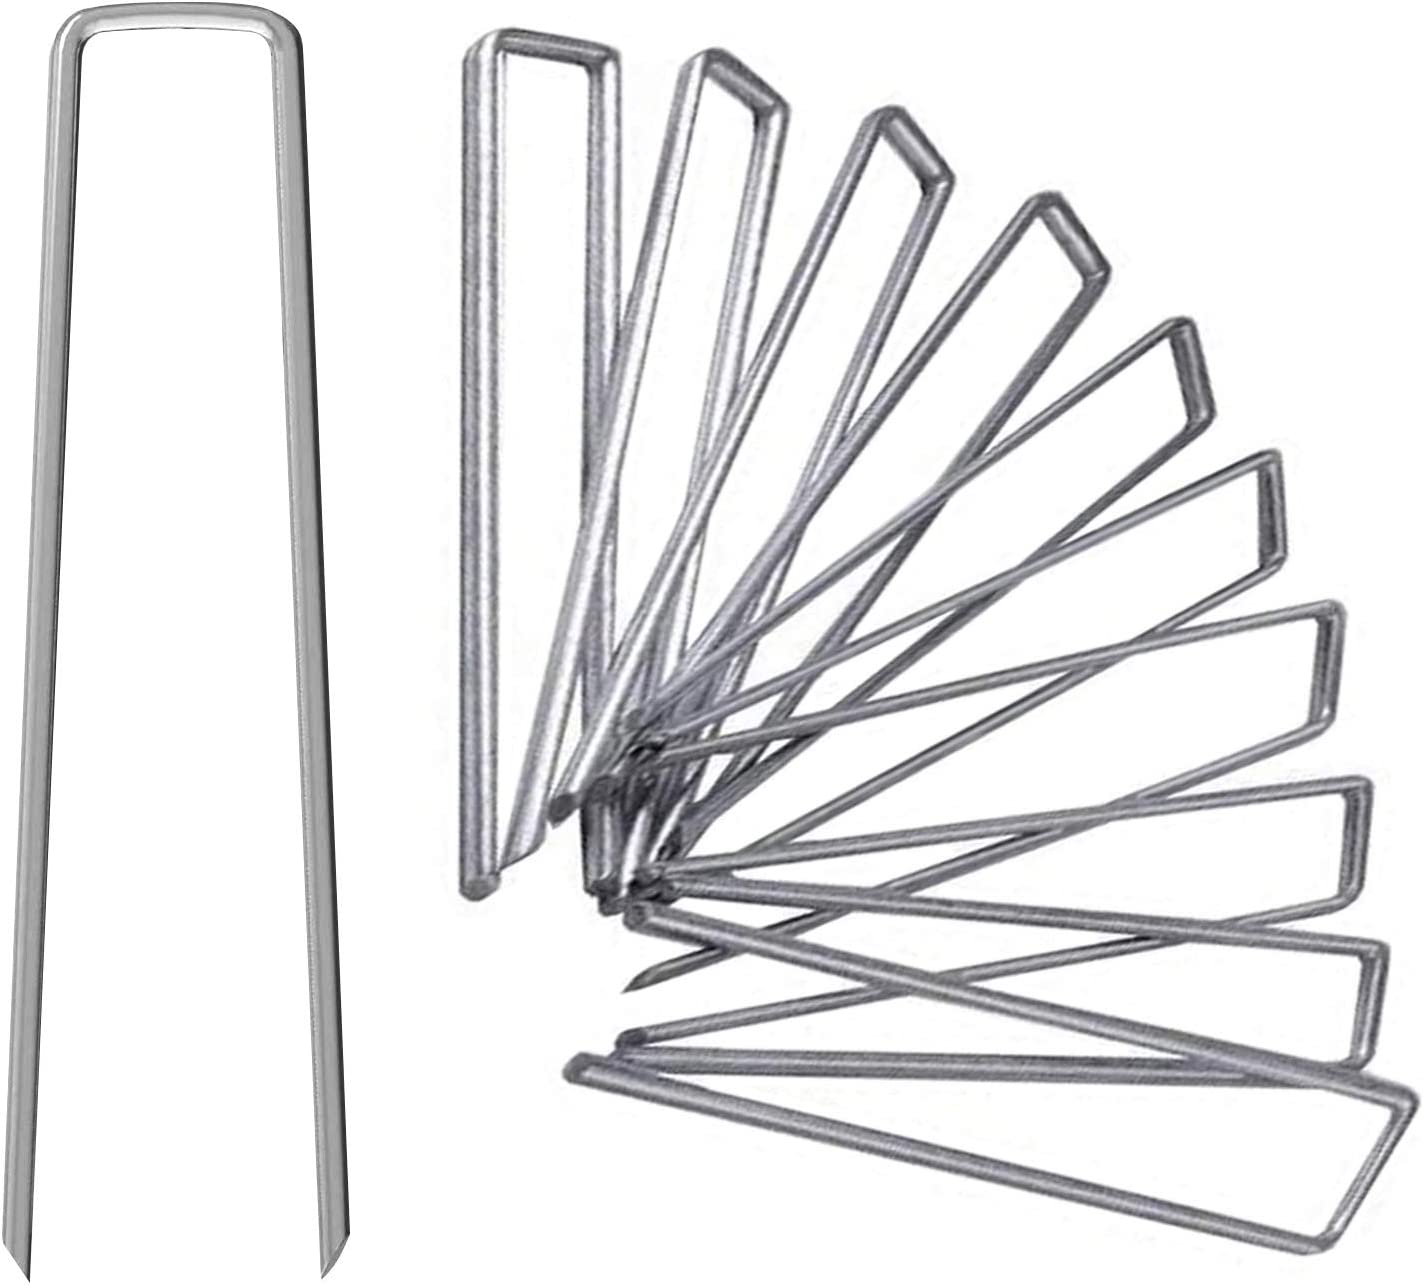 UPMCT 12 Inch Galvanized Garden Landscape Staples Stakes, 25 50 100 PCS Anti-Rust Garden Staples U-Shaped Landscape Pins for Secure Lawn Fabric (25, 12 Inch)